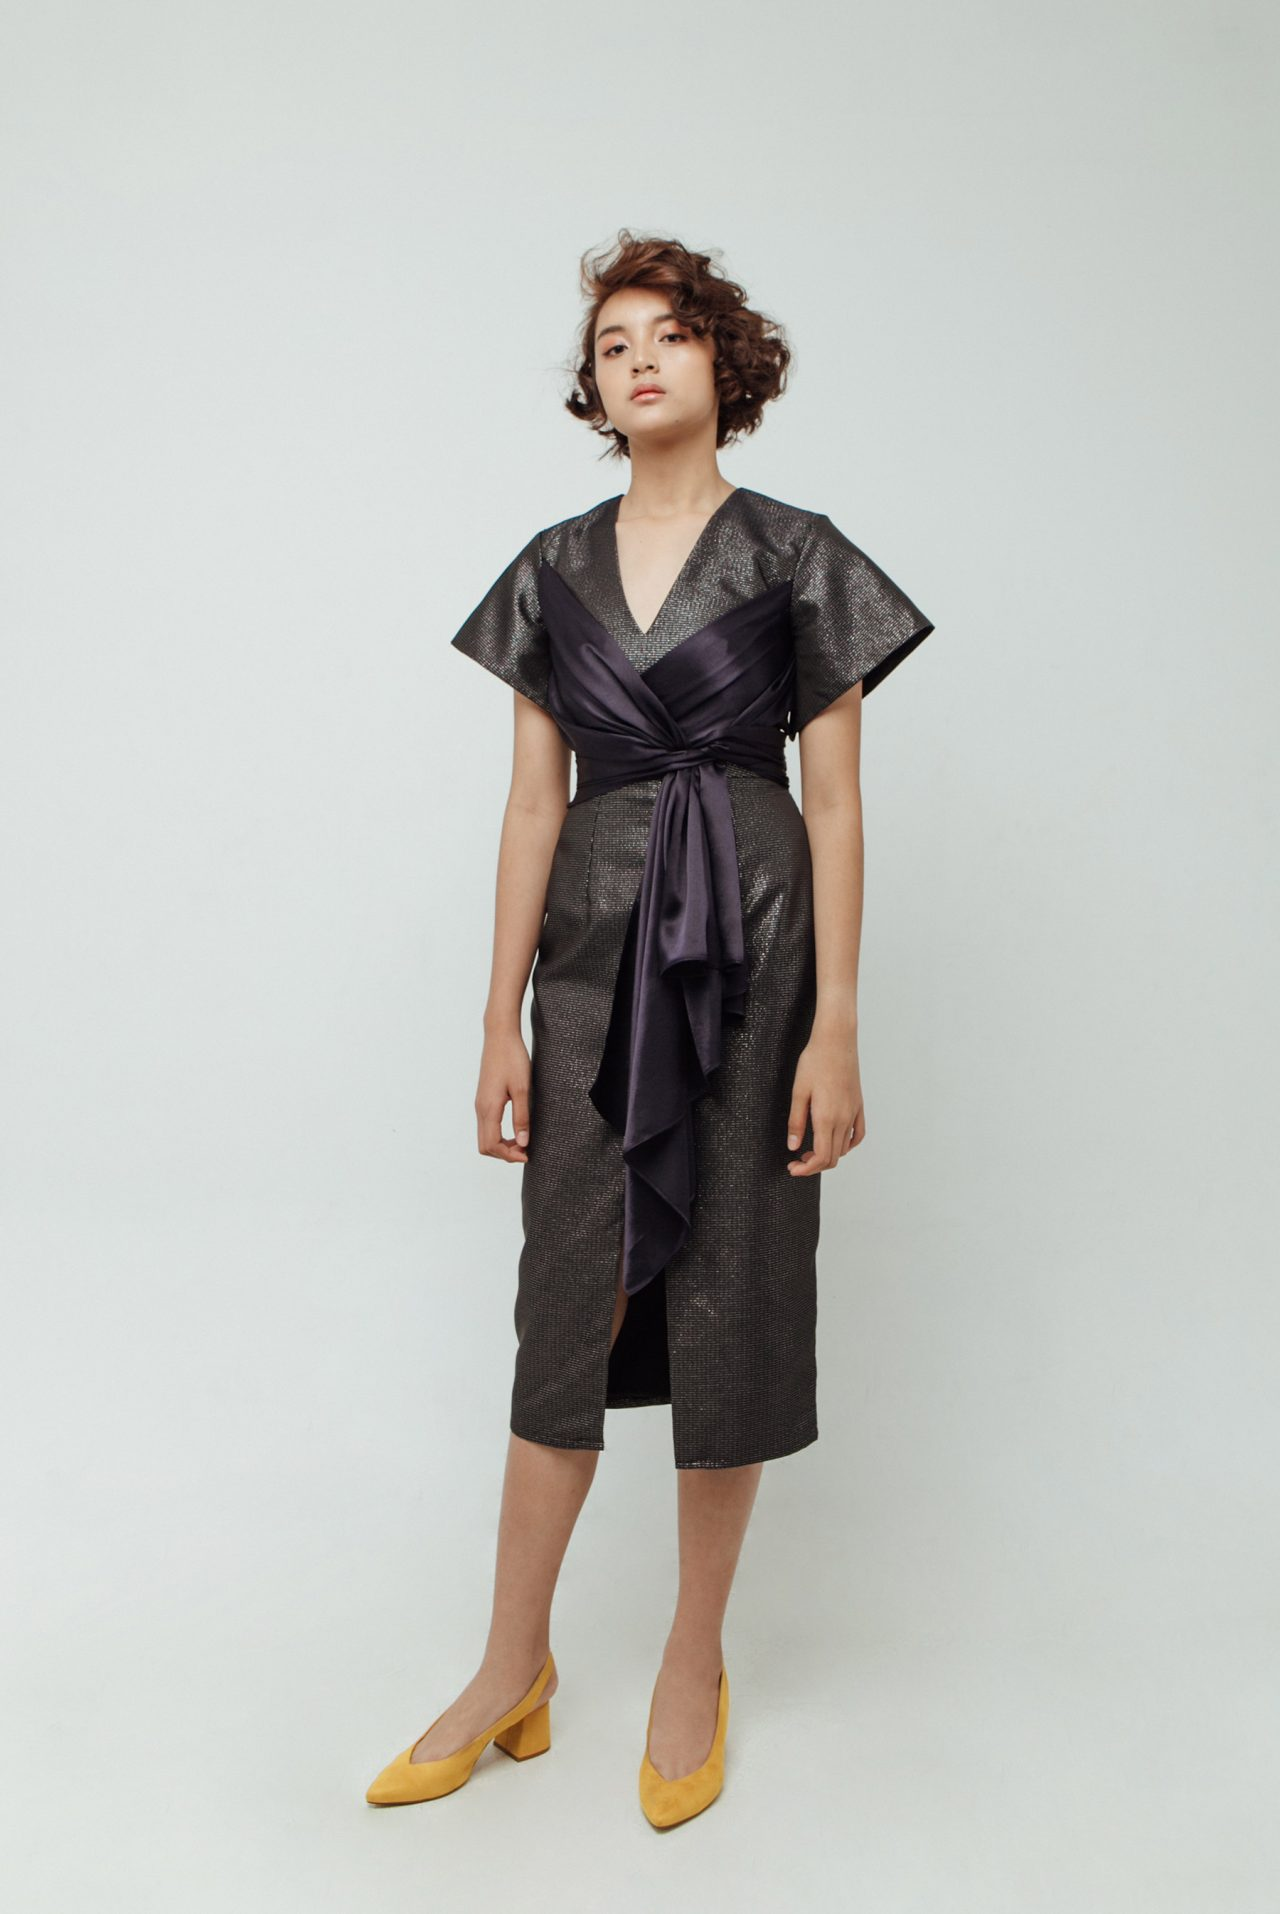 BACK-DETAIL-WITH-FRONT-RIBBON-MIDI-DRESS-0